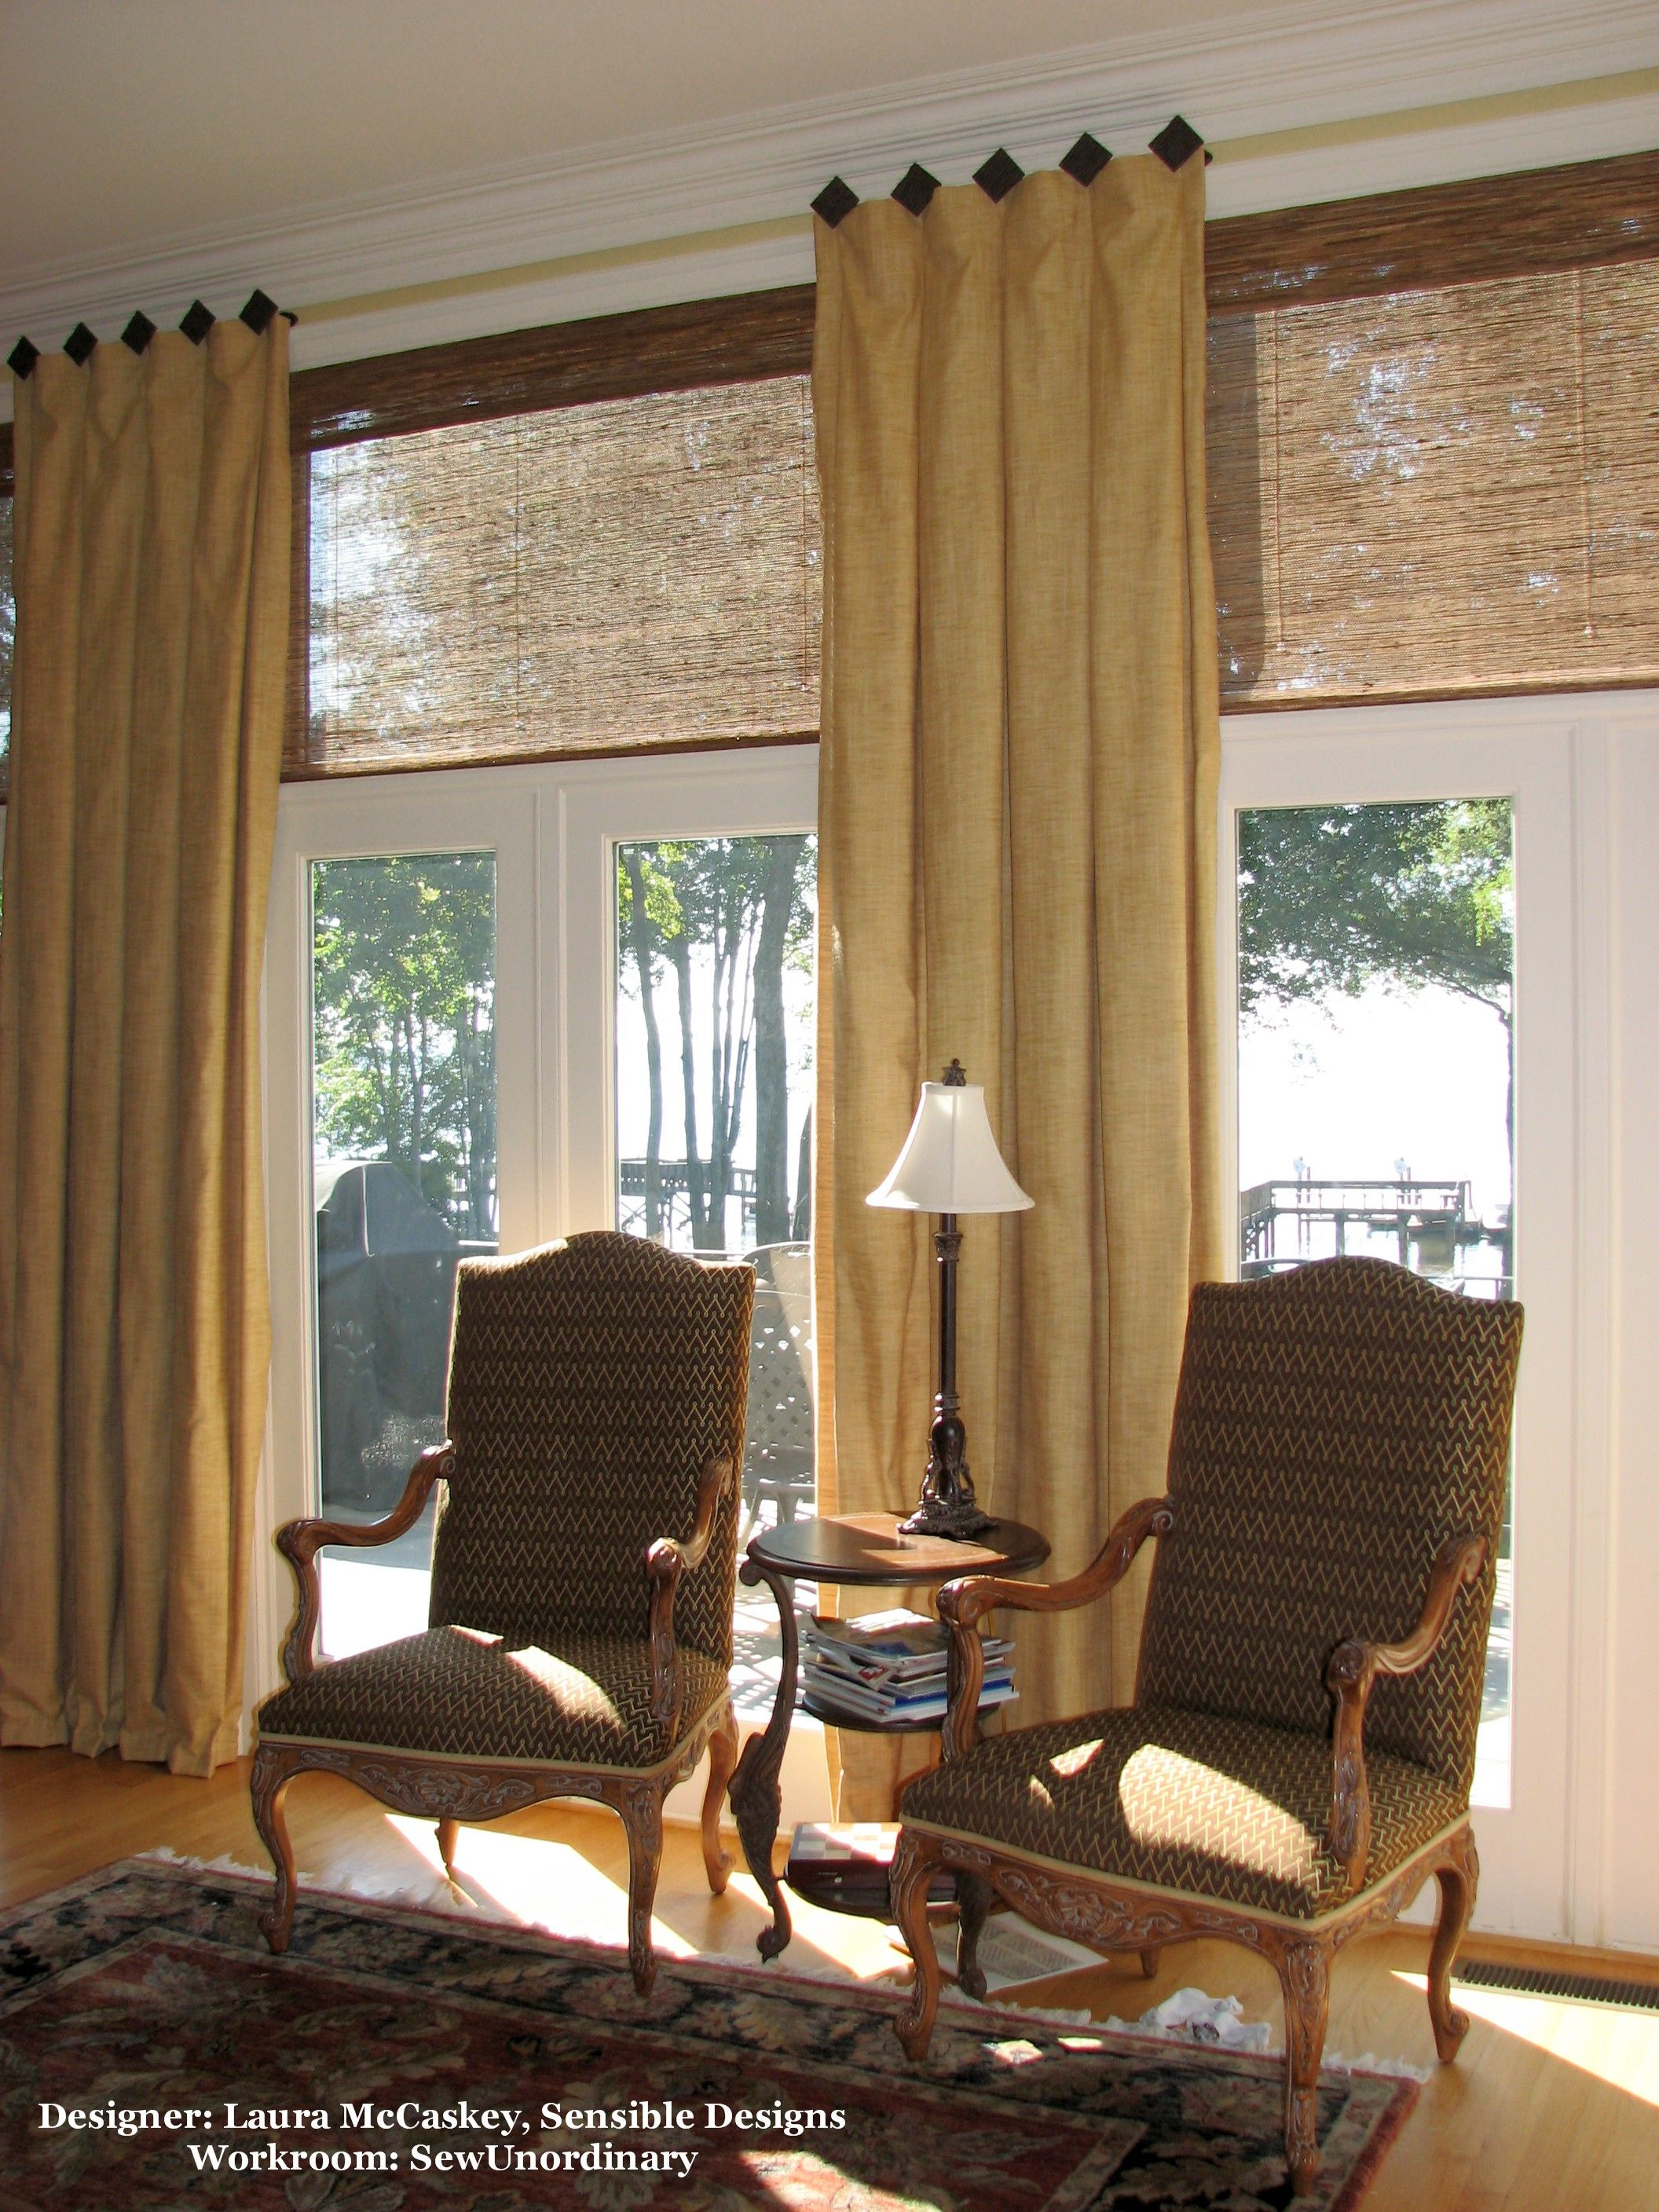 Window covering ideas  inverted box pleats with woven wood shades  window treatments